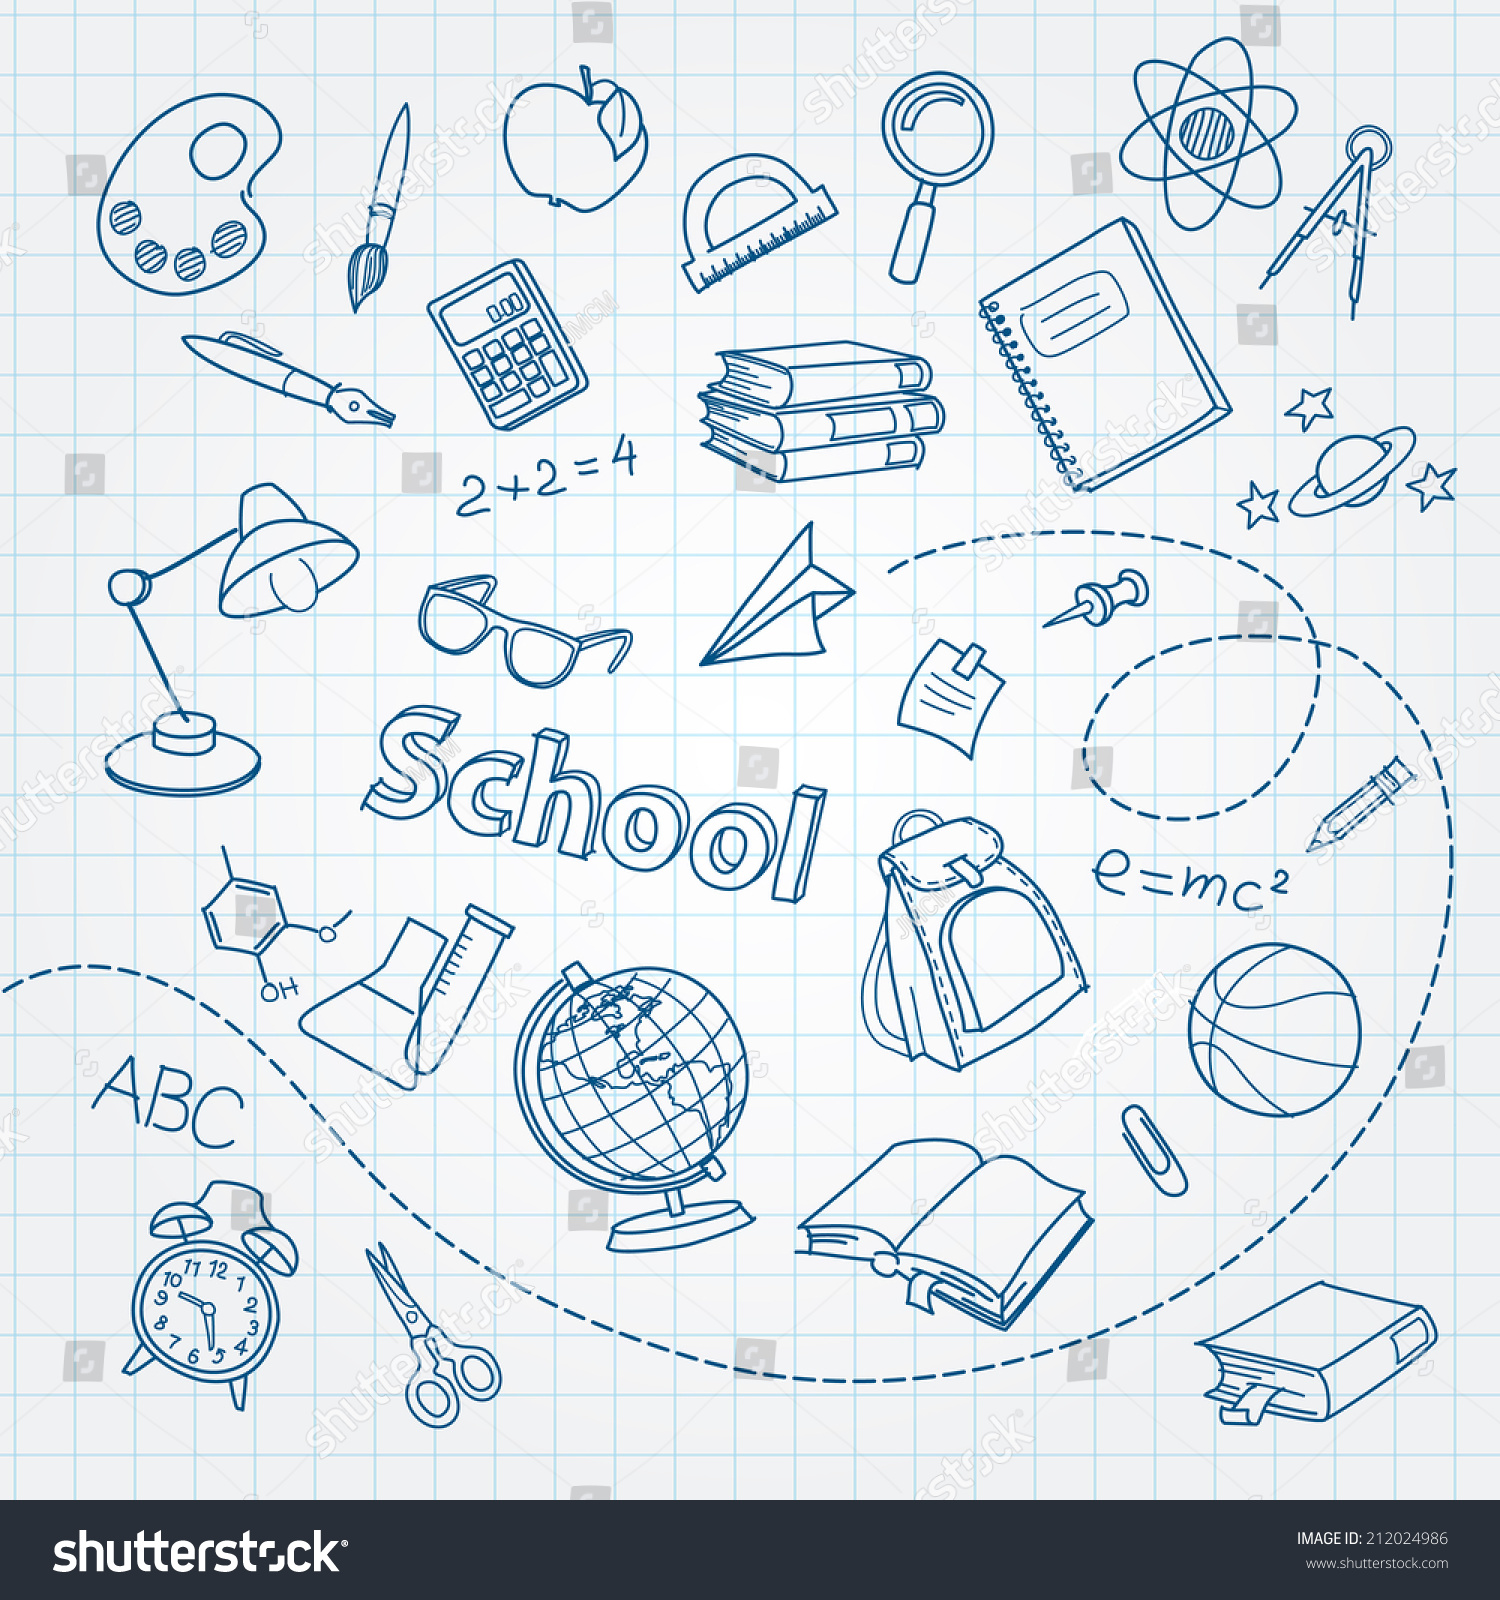 Of images stars essay importance education on